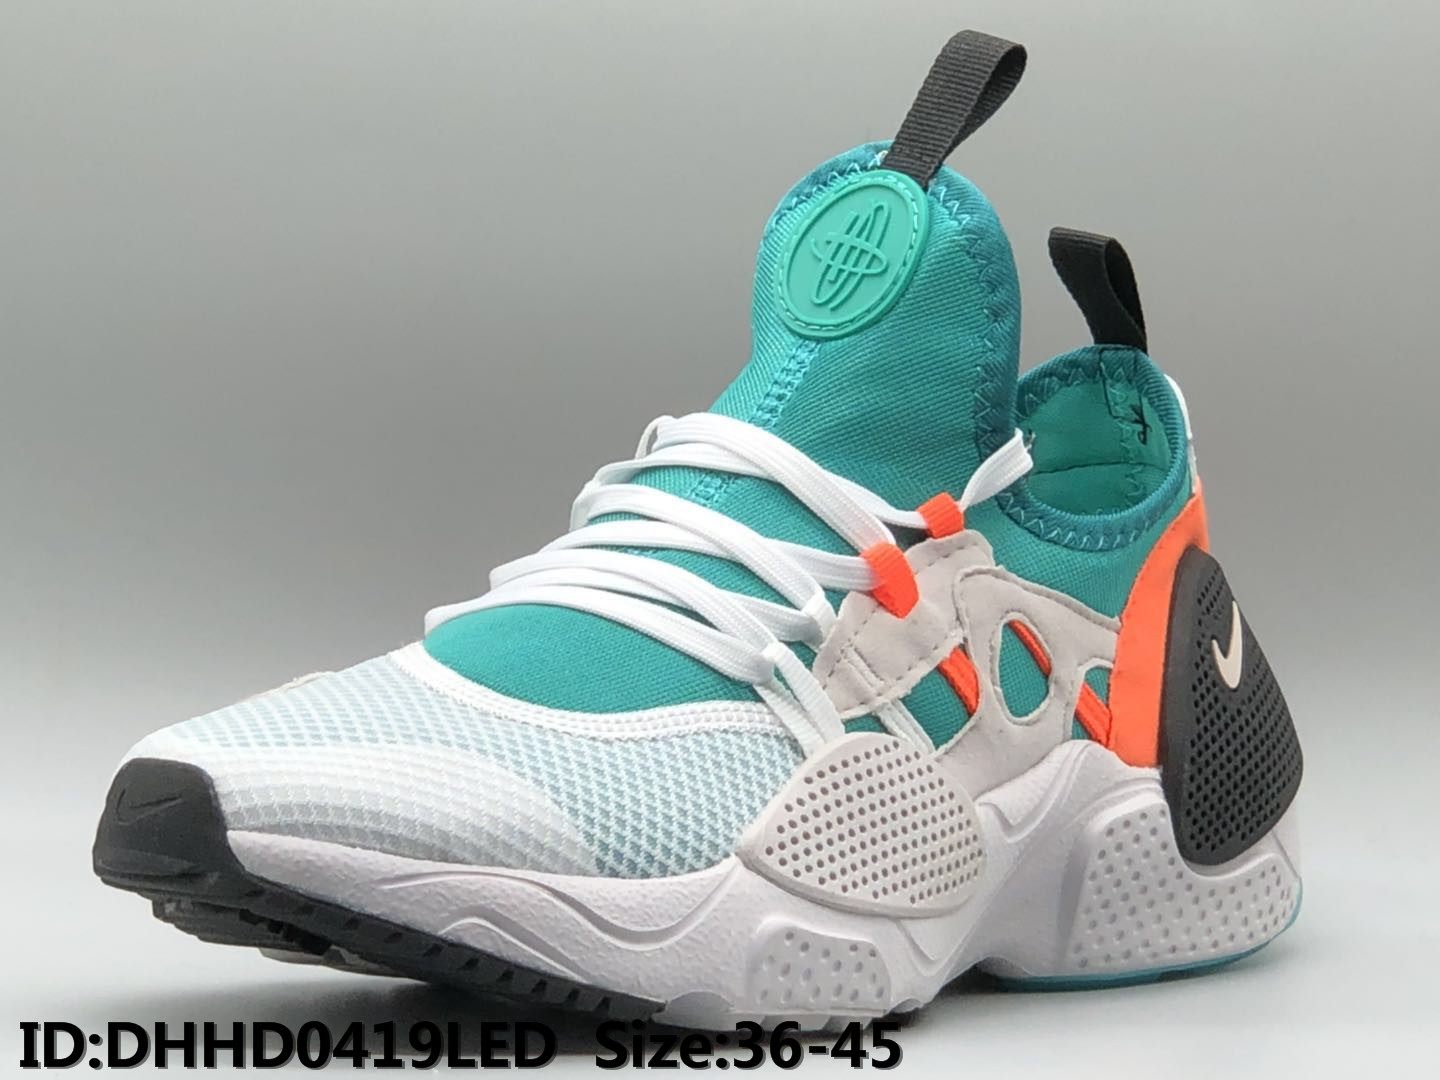 Nike Air Huarache 7 White Green Black Orange Shoes